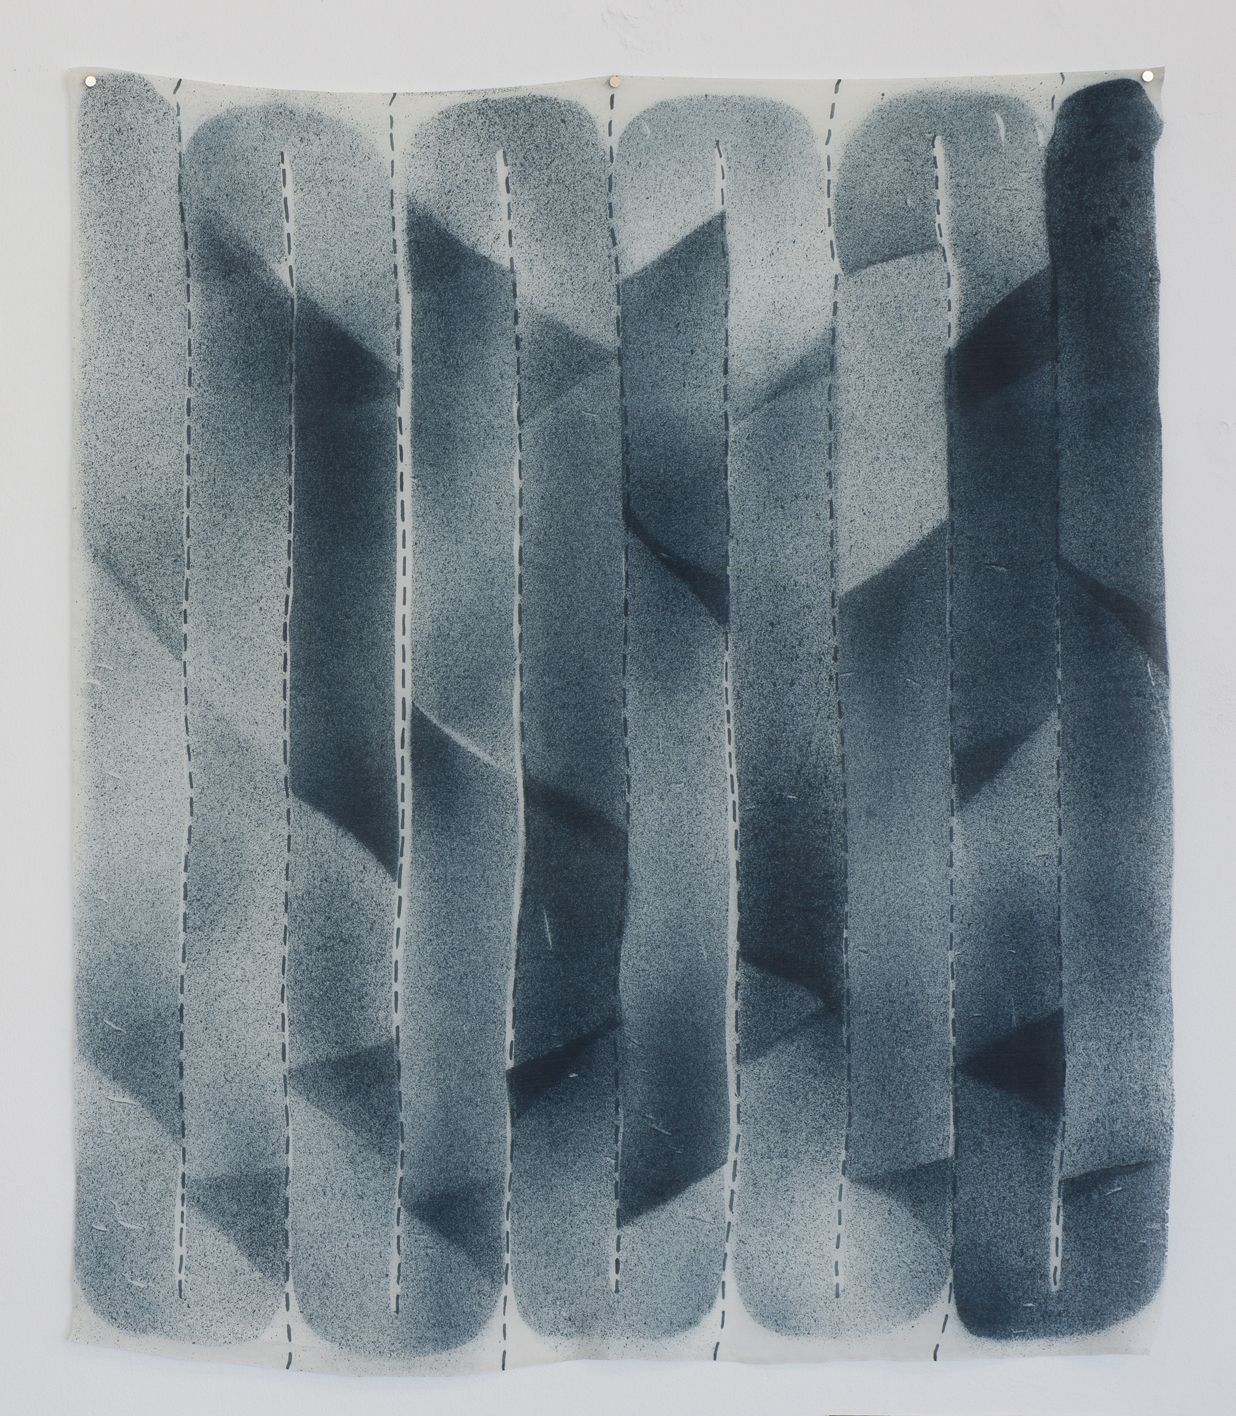 """Andy Hall,10 Yards Grey, dye and ink on silk, 36"""" x 30.5"""", 2016"""